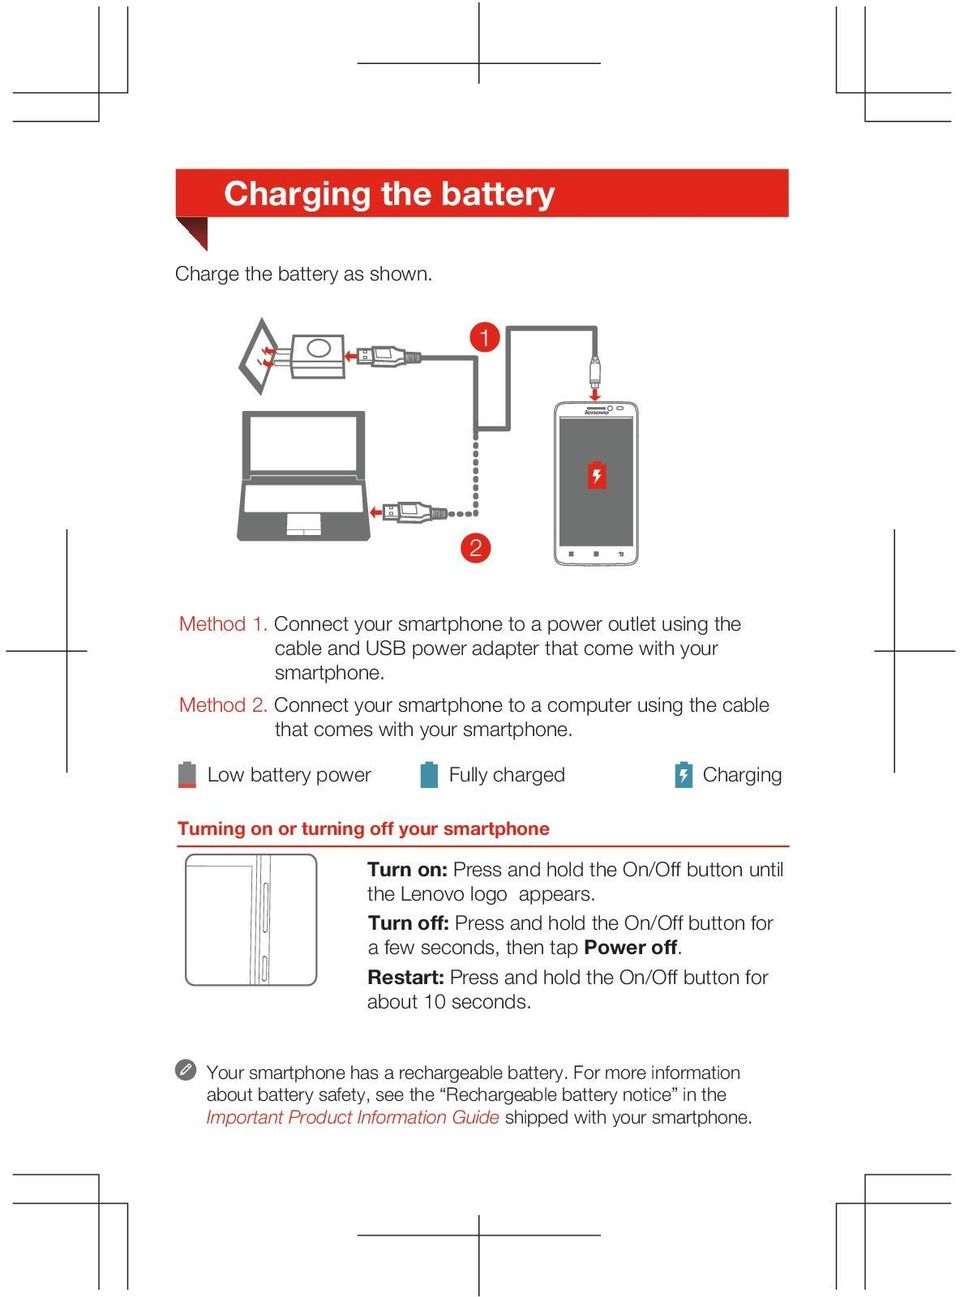 Low battery power Fully charged Charging Turning on or turning off your smartphone Turn on: Press and hold the On/Off button until the Lenovo logo appears.